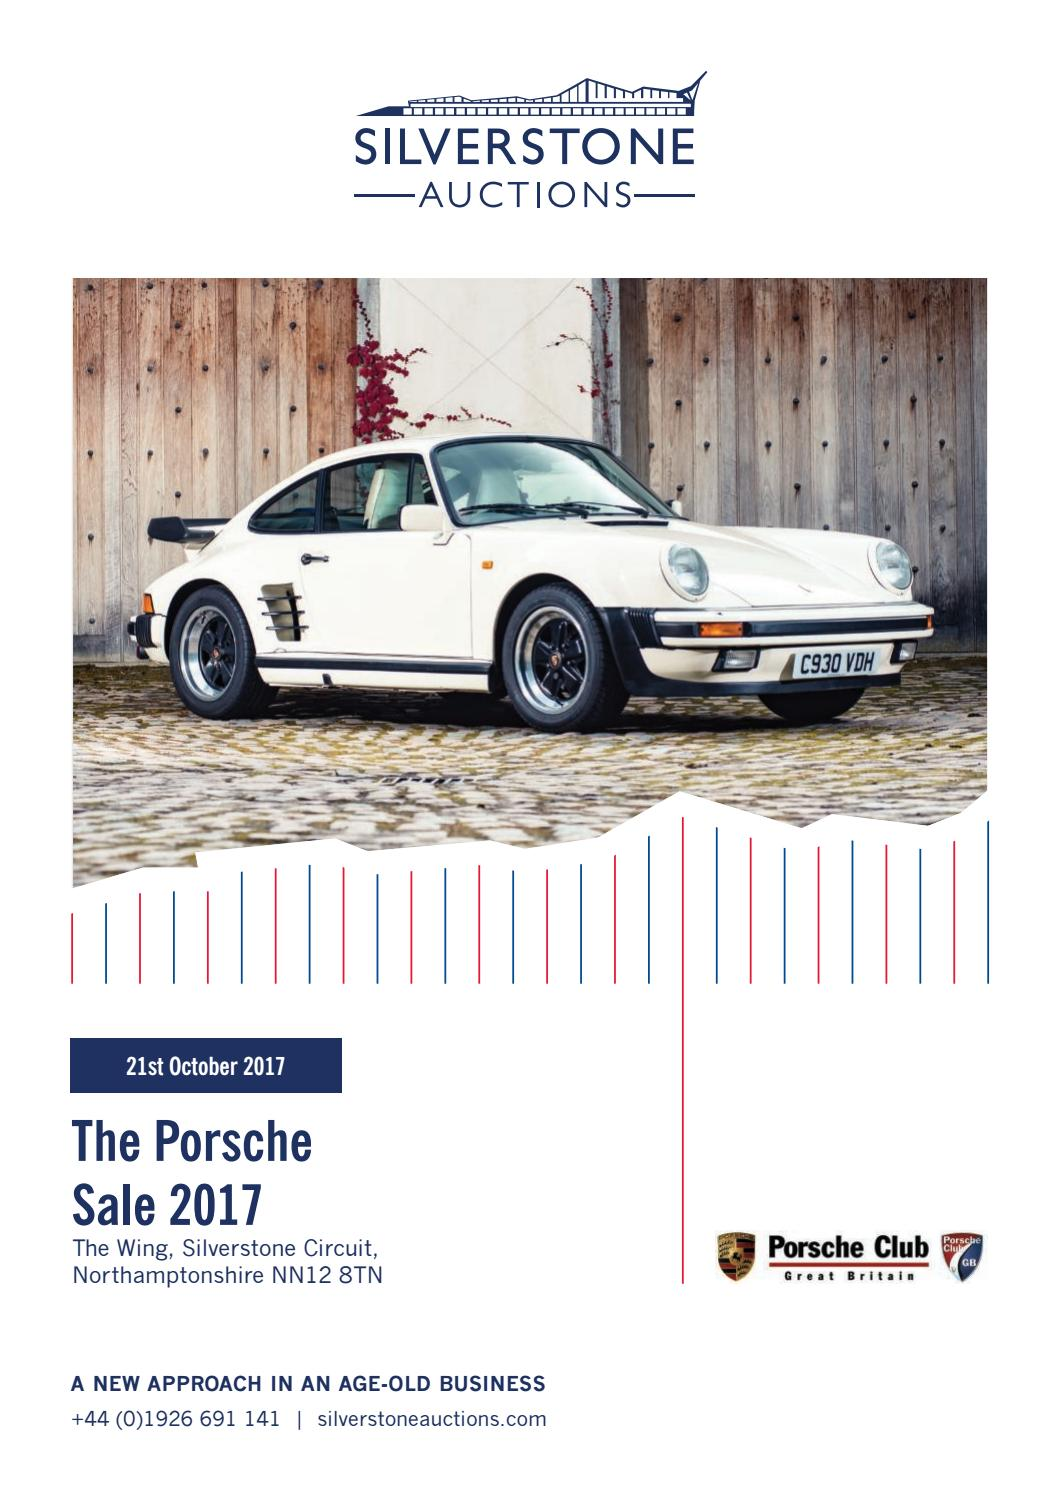 hight resolution of silverstone auctions the porsche sale 2017 21st october 2017 by silverstone auctions issuu